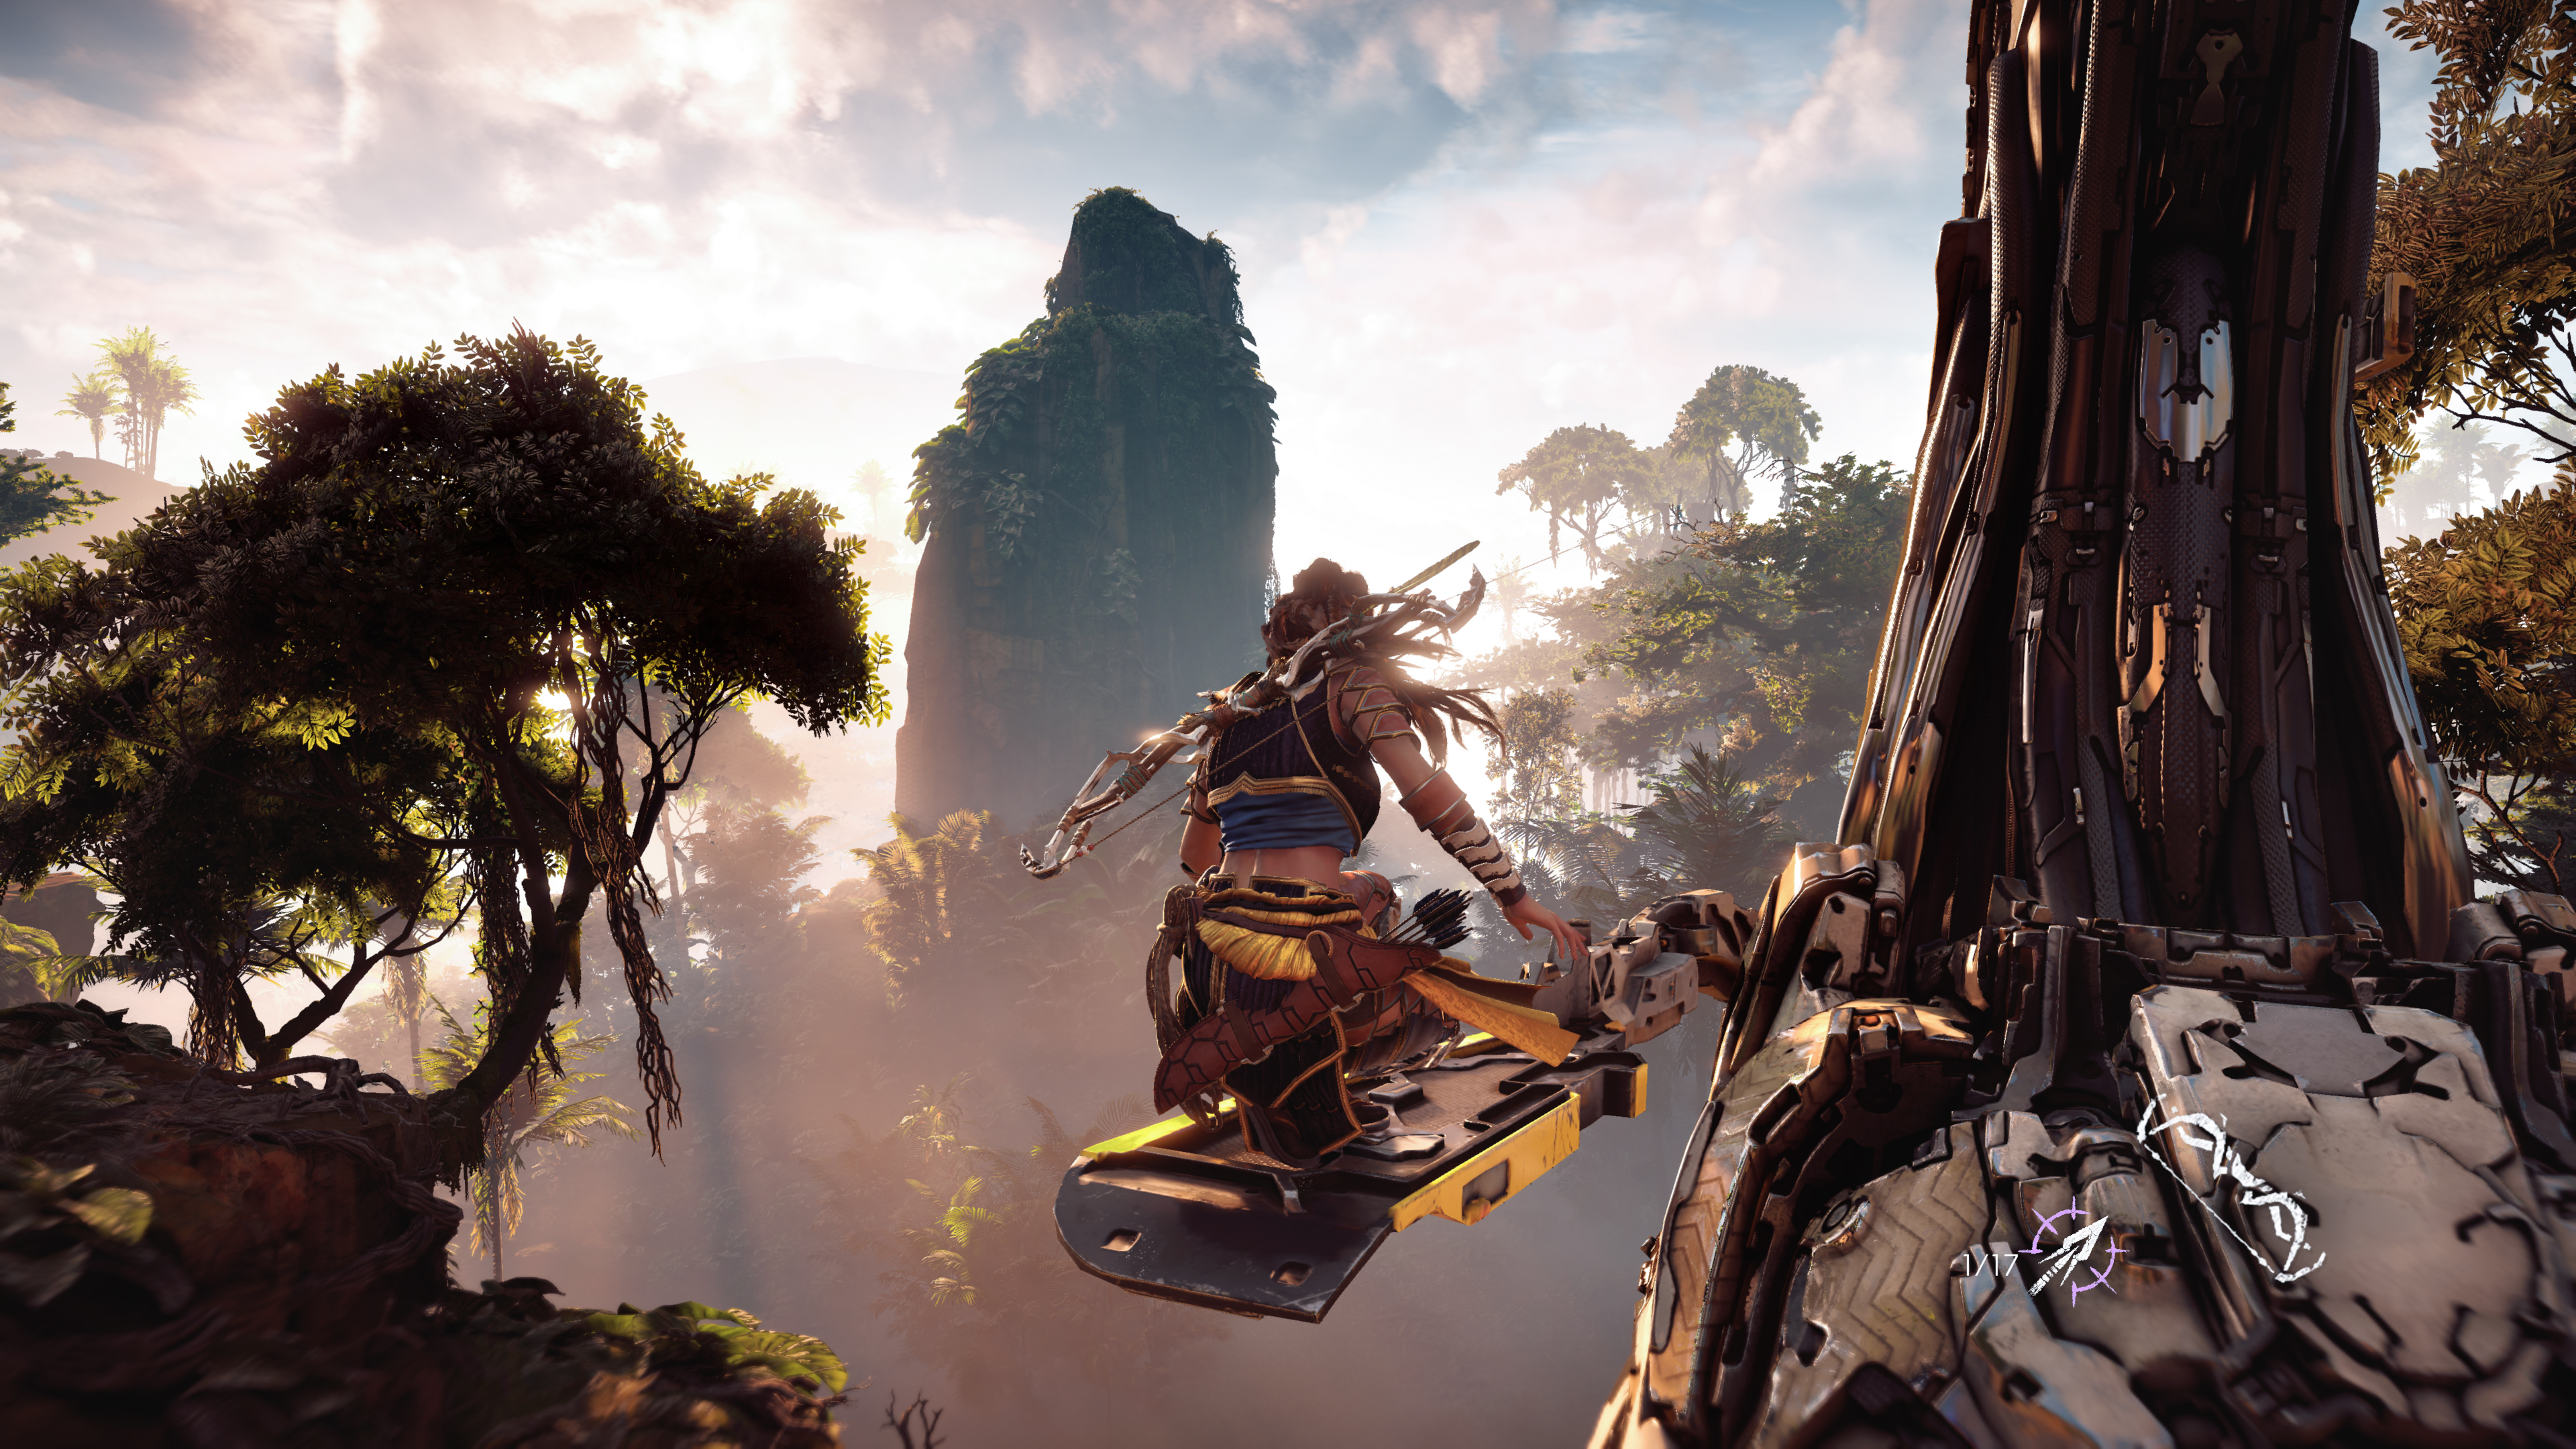 Horizon Zero Dawn: Get Every Collectible Location With These Maps